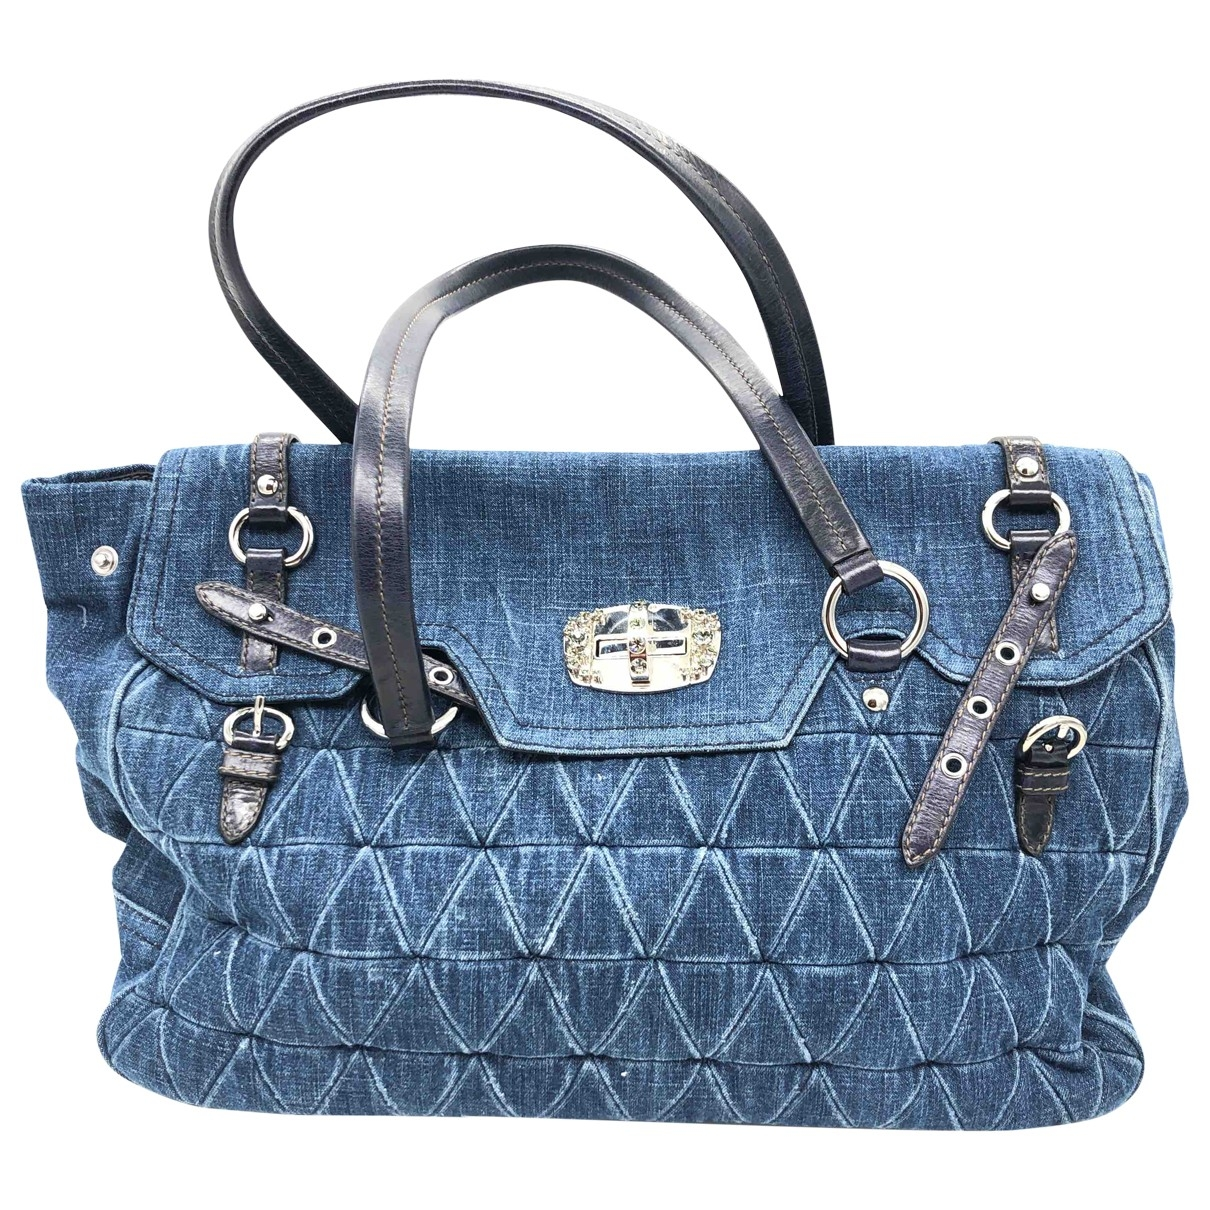 Miu Miu \N Blue Cloth handbag for Women \N